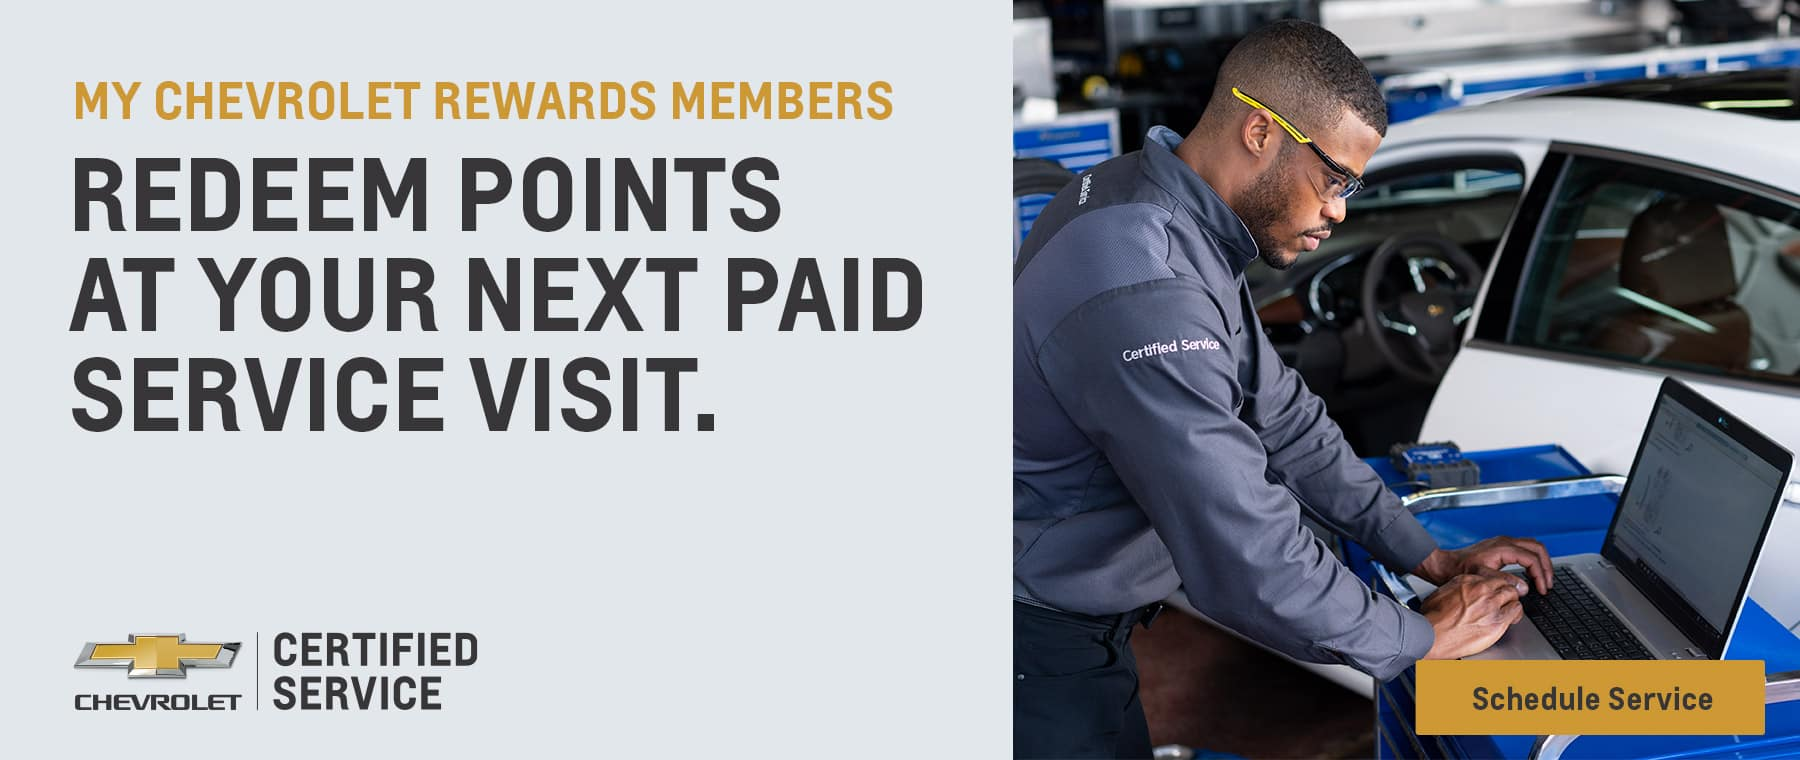 Chevrolet Service Rewards - El Dorado Chevrolet in McKinney, Texas